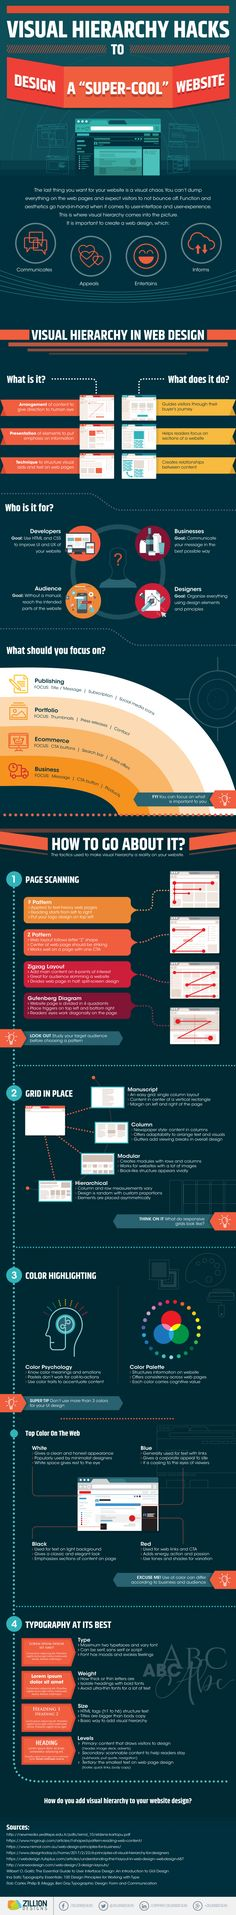 Visual Hierarchy Hacks to Design a Super-Cool Website #infographic #Website #WebDevelopment